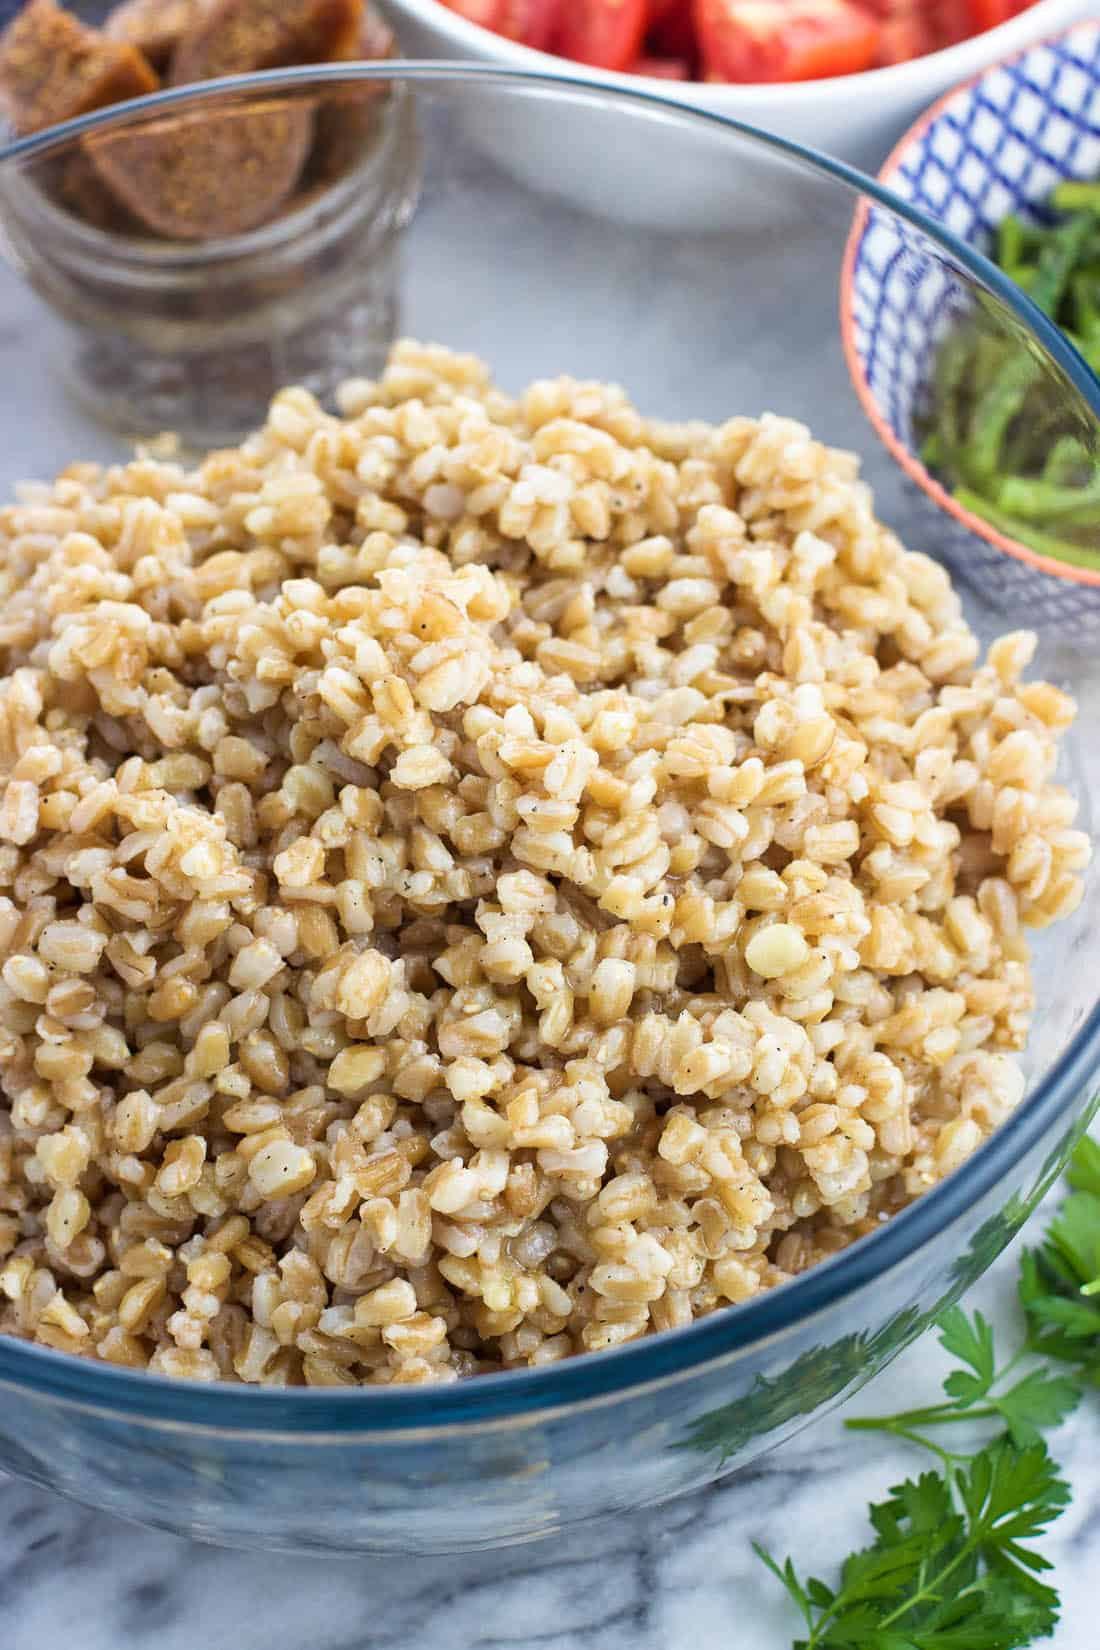 Cooked farro in a serving bowl